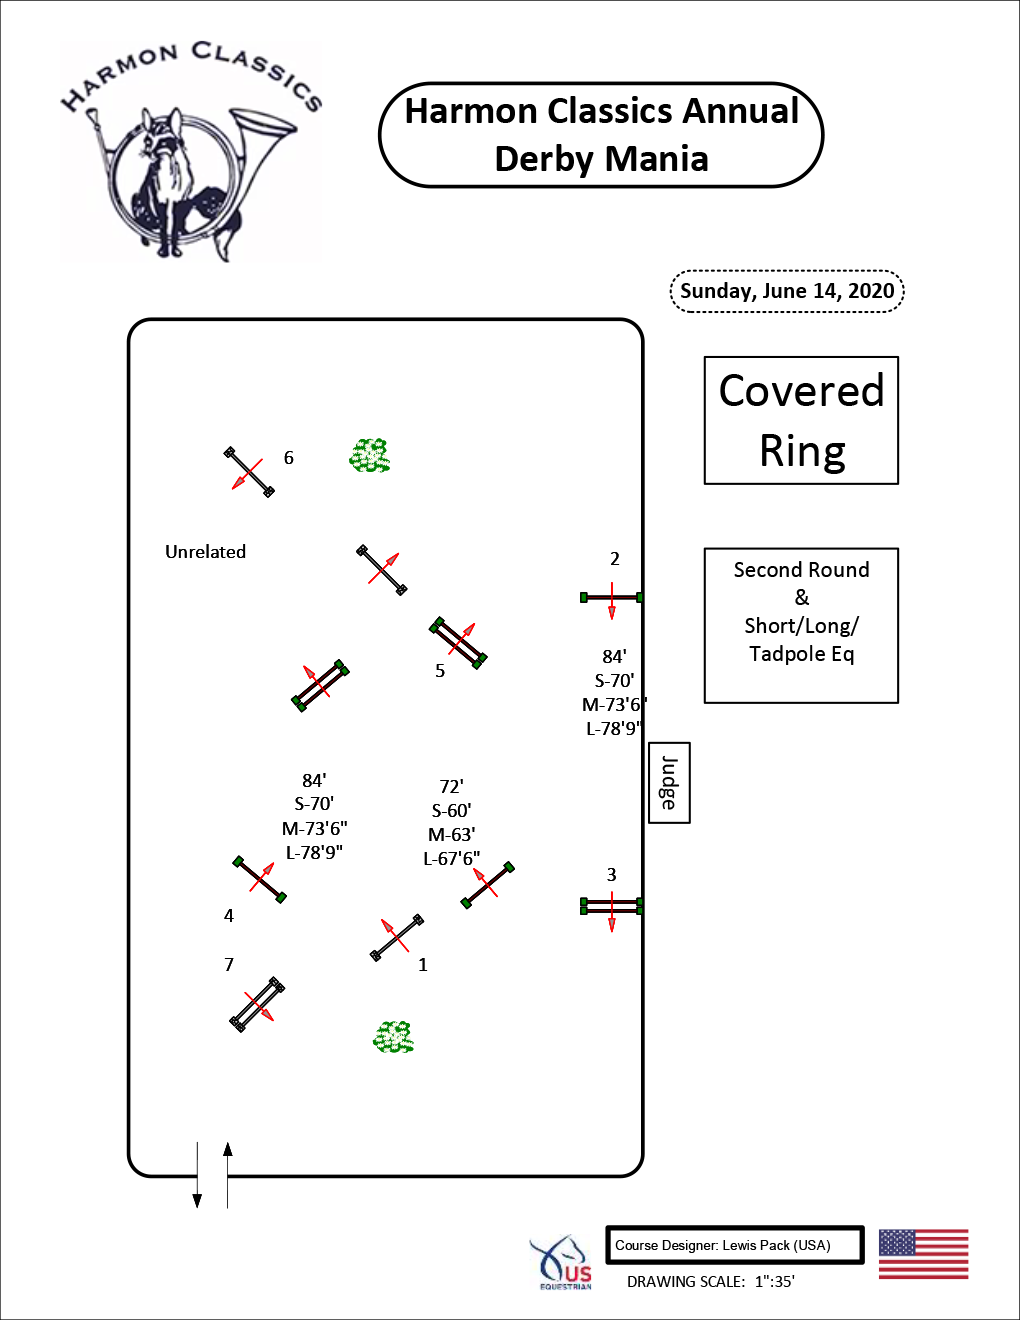 Covered-Arena-Sunday6-14-Second-Round-and-Short-Long-St-Tadpole-Eq-Harmon-Classics-Derby-Mania